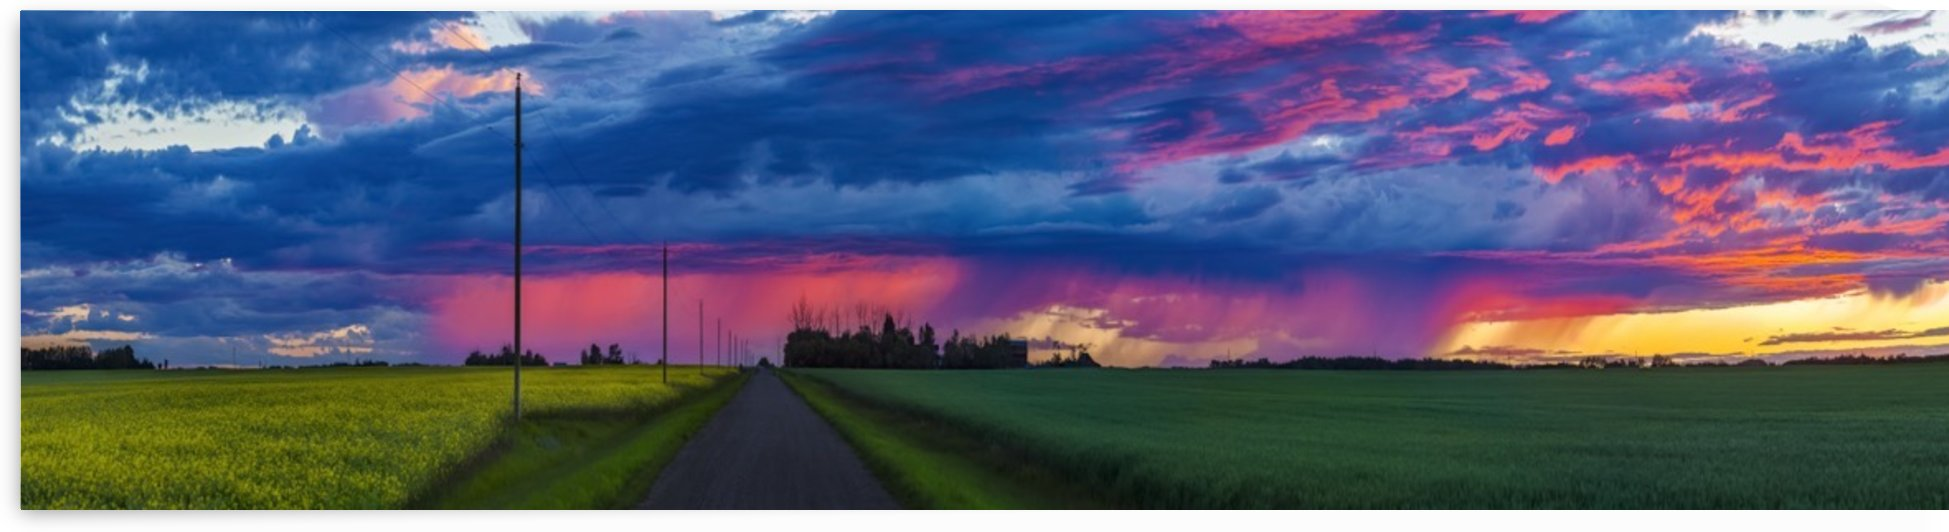 Dramatic colourful sky at sunset over green farmland and a country road; Alberta, Canada by PacificStock